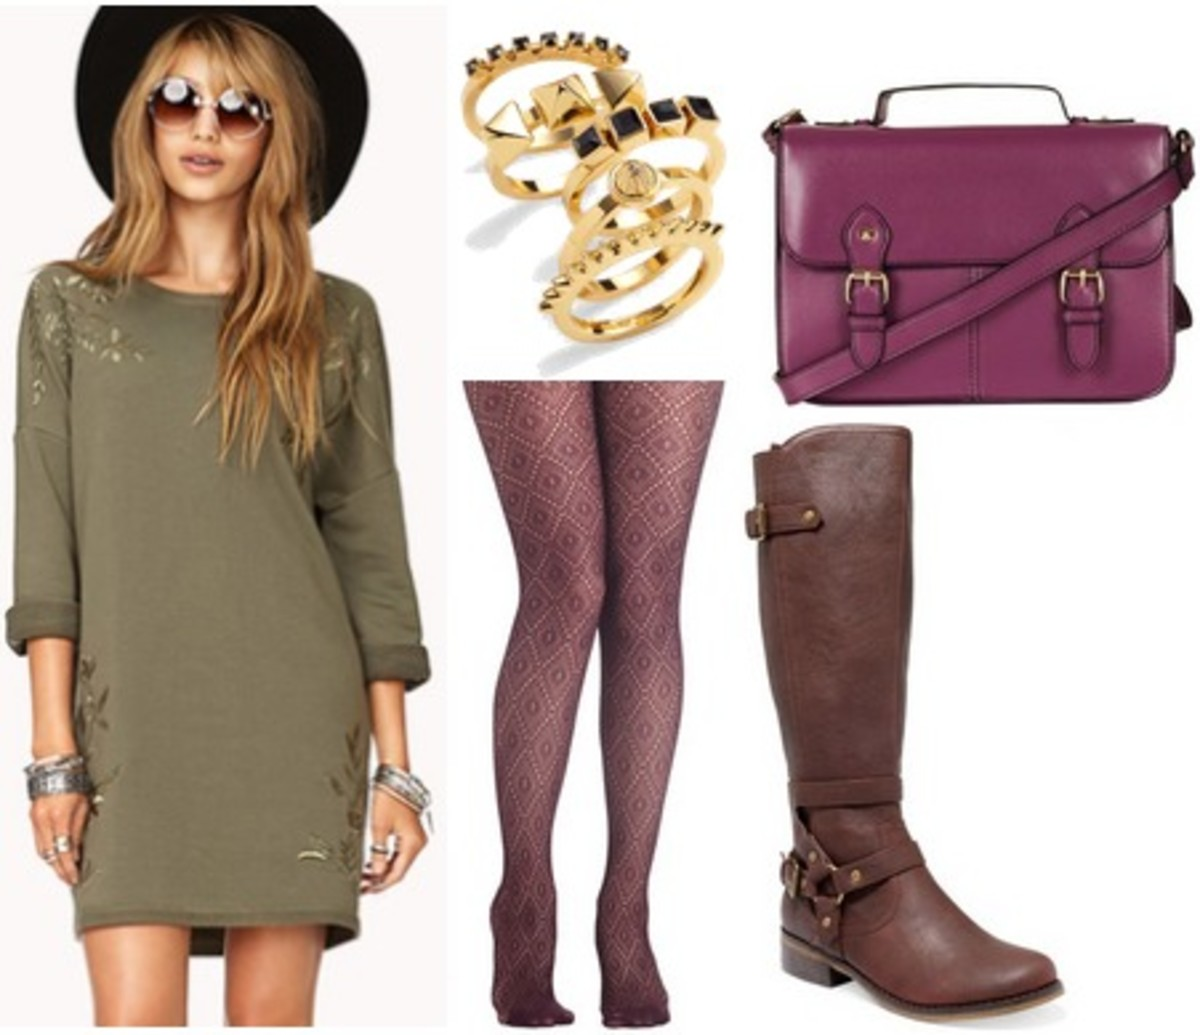 green-olive-dress-sweater-purple-tights-purple-bag-brown-shoe-boots-ring-howtowear-fashion-style-outfit-fall-winter-hairr-lunch.jpg